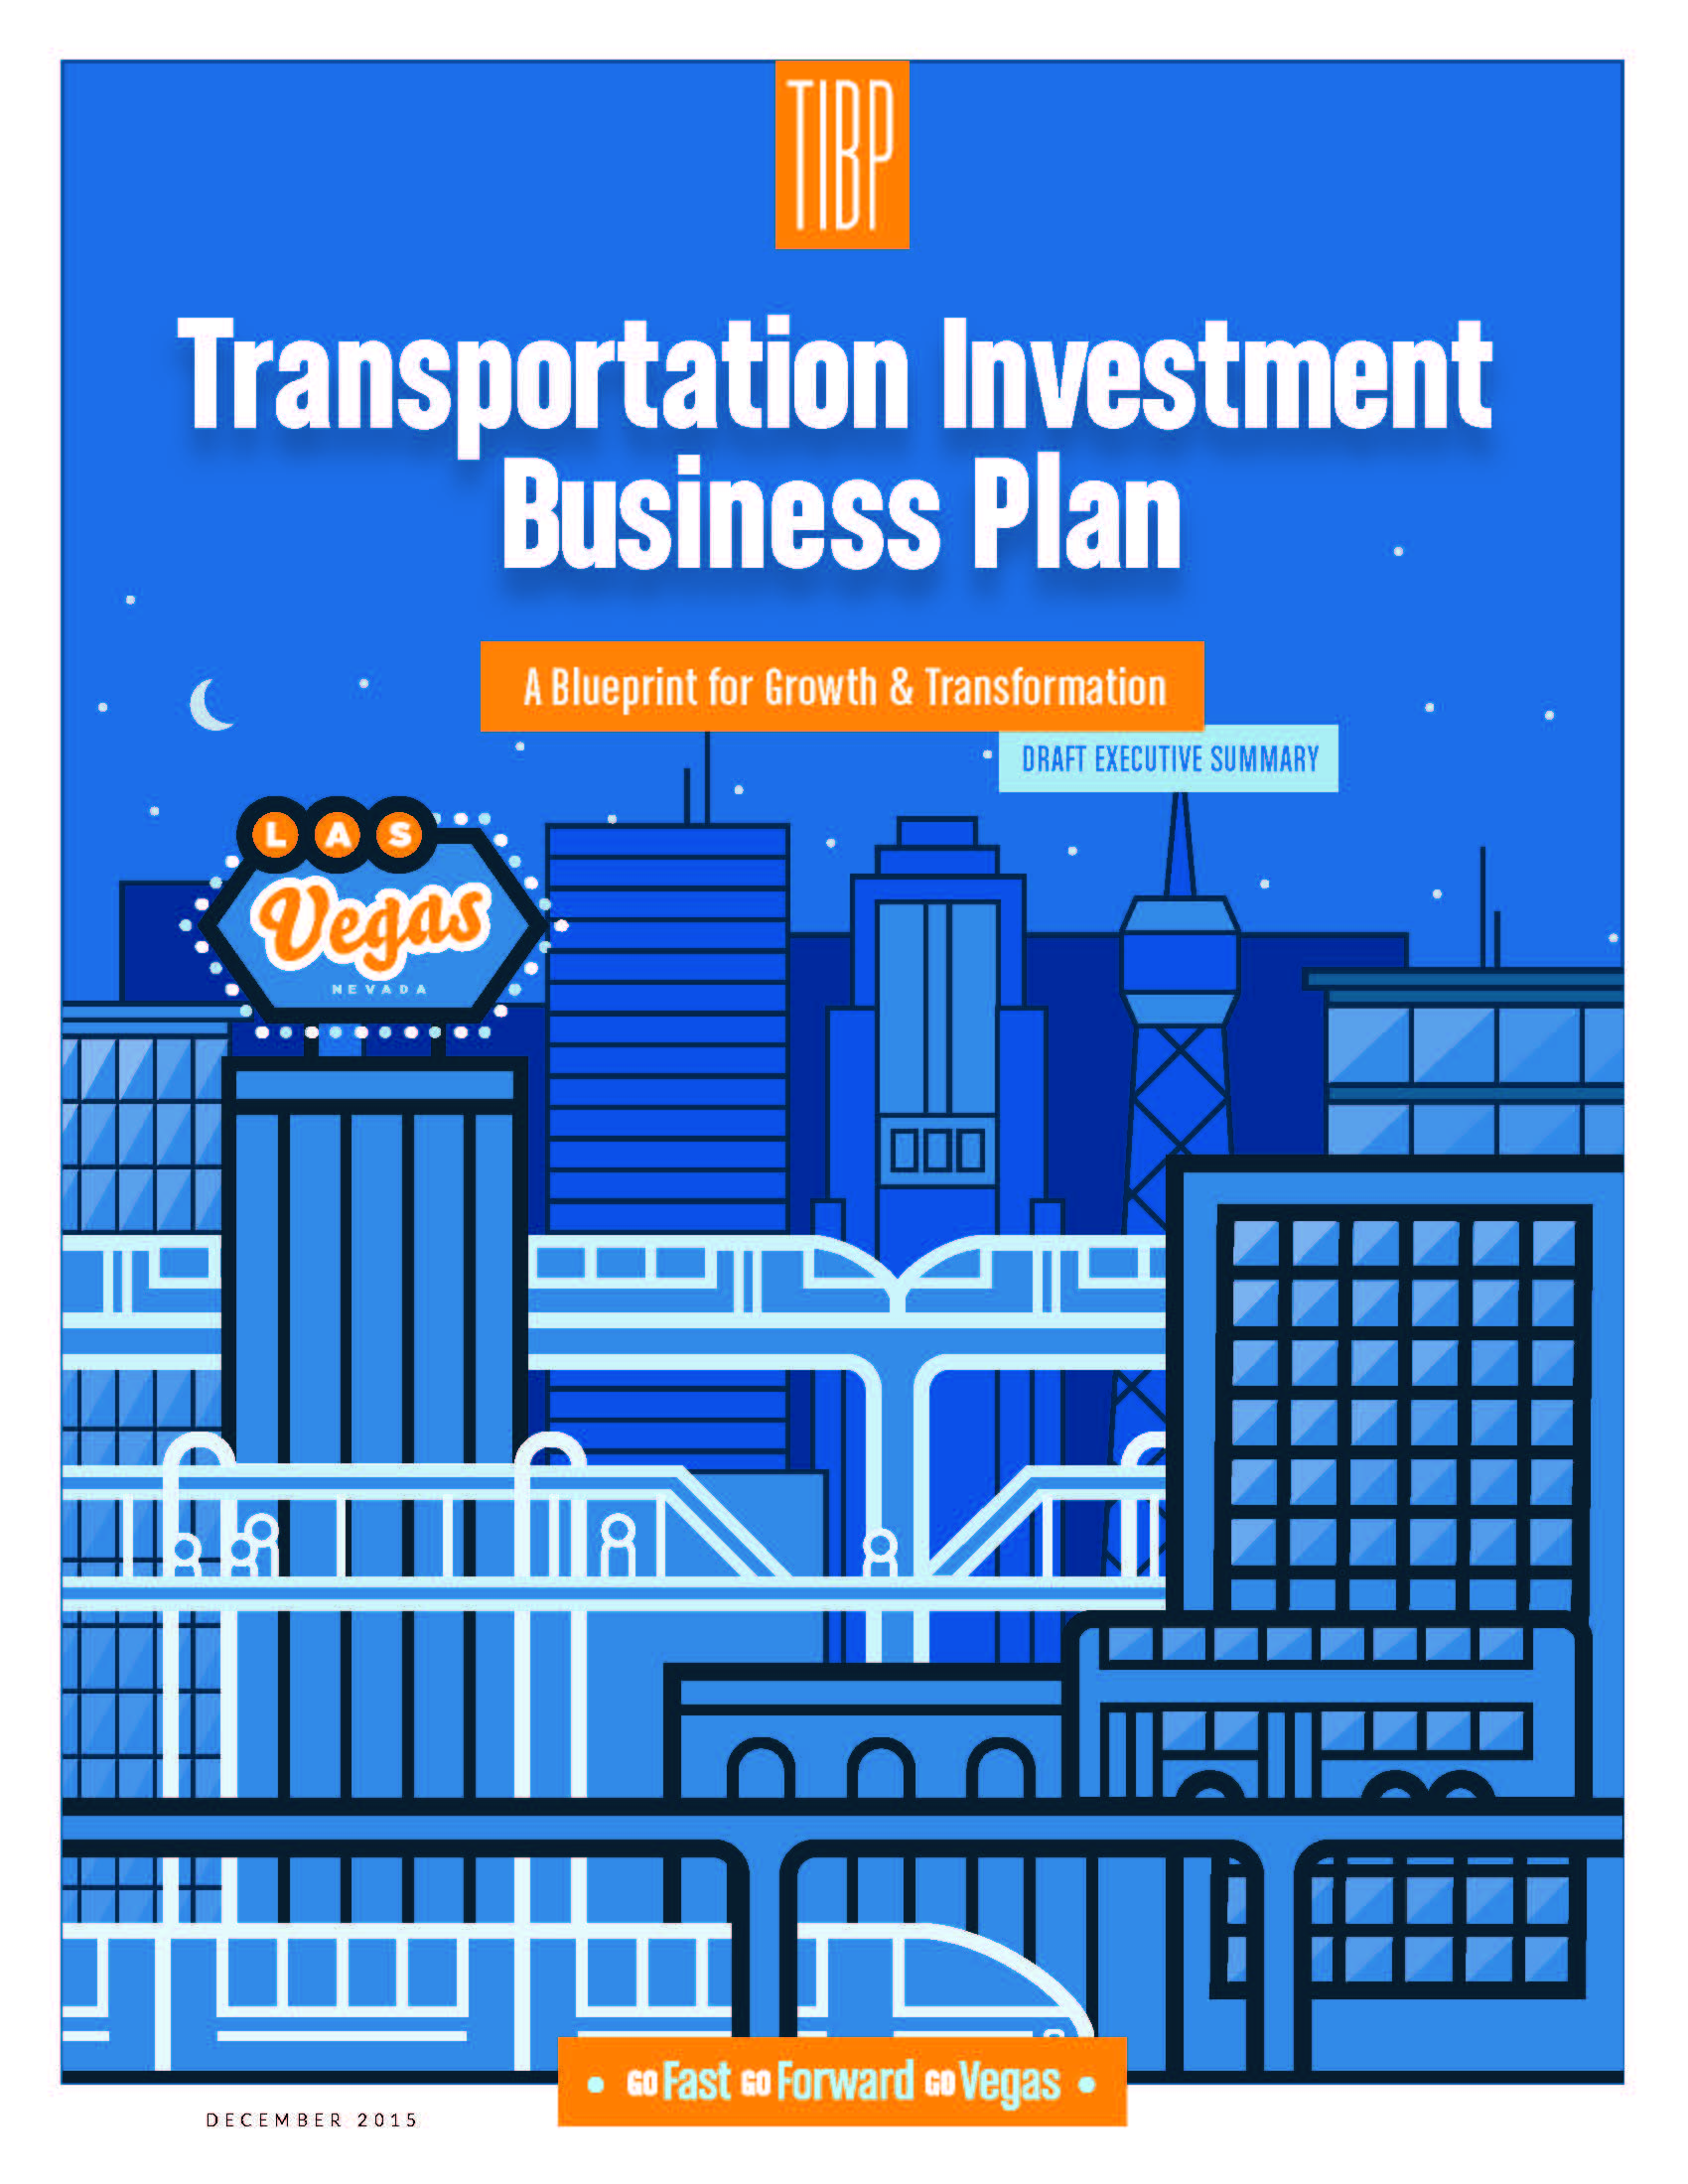 Tibp transportation investment business plan learn what benefits las vegas could gain by investing in the tibp recommendations and making the choice to go fast go forward go vegas malvernweather Images